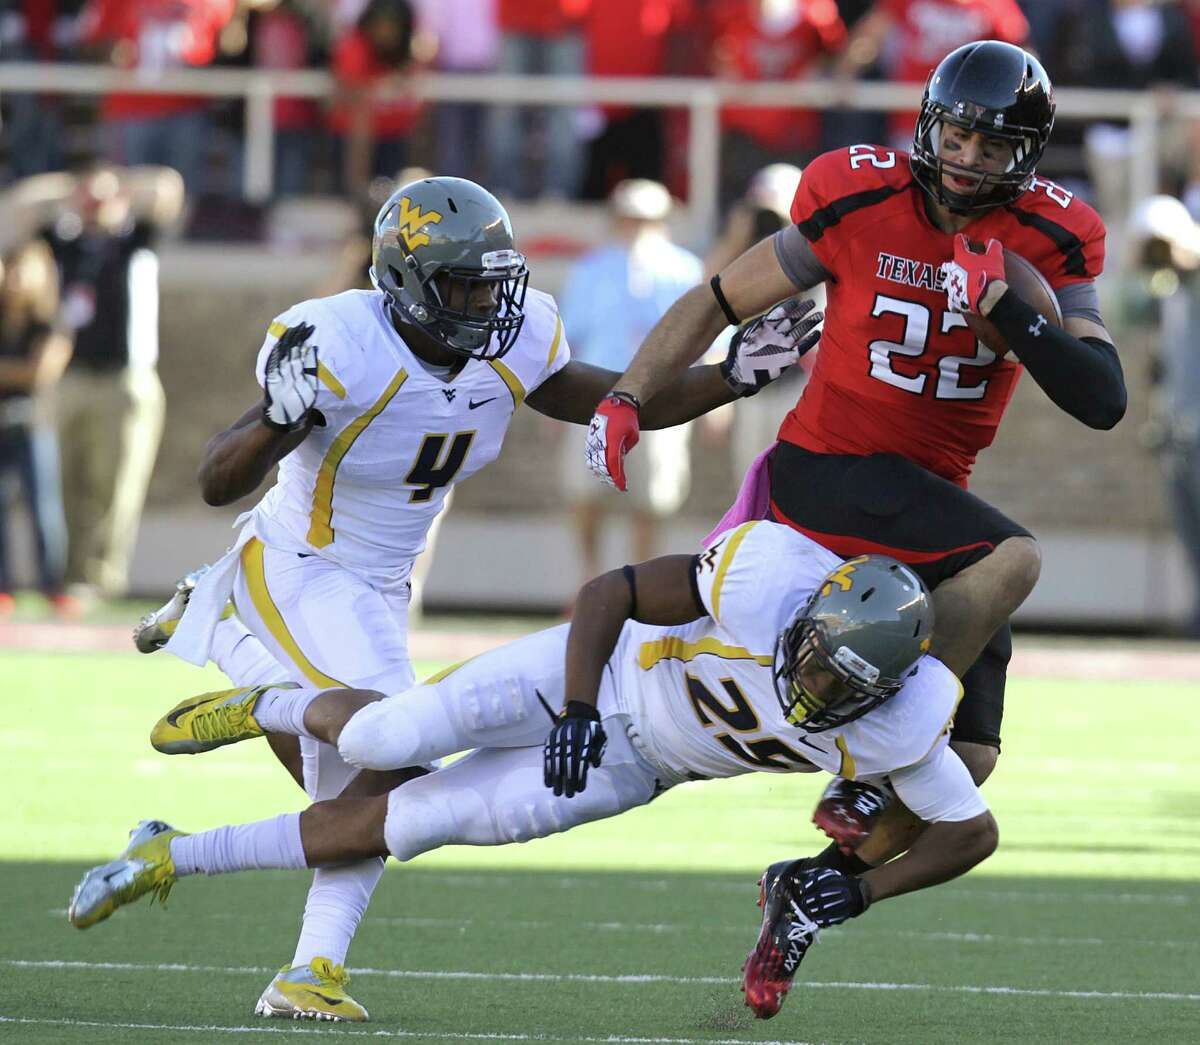 Texas Tech tight end Jace Amaro (right) is hit by West Virginia's Darwin Cook as Josh Francis trails during Saturday's 49-14 Red Raiders victory over the then-No. 5 Mountaineers.